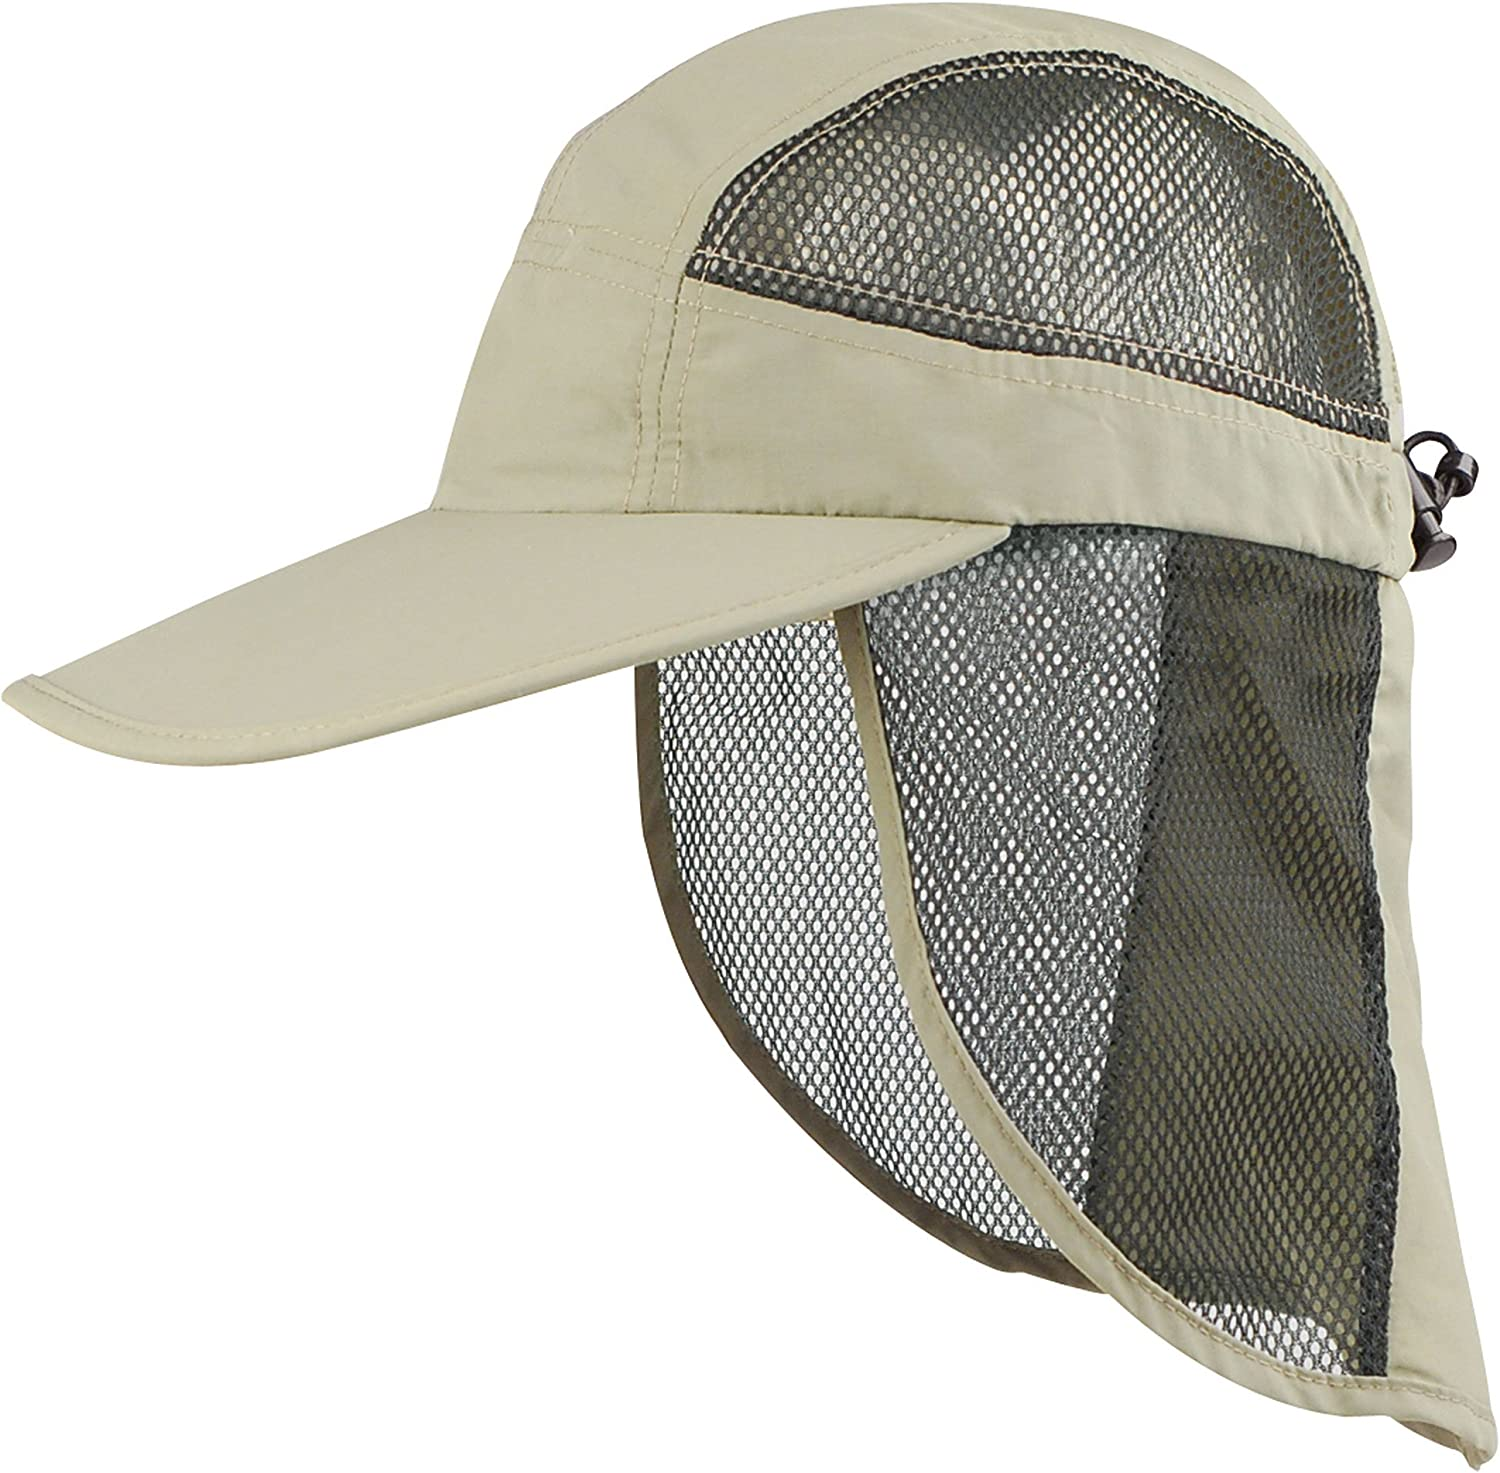 Juniper Outdoor UV Cap with Max 45% OFF and Flap Mesh Sides Directly managed store